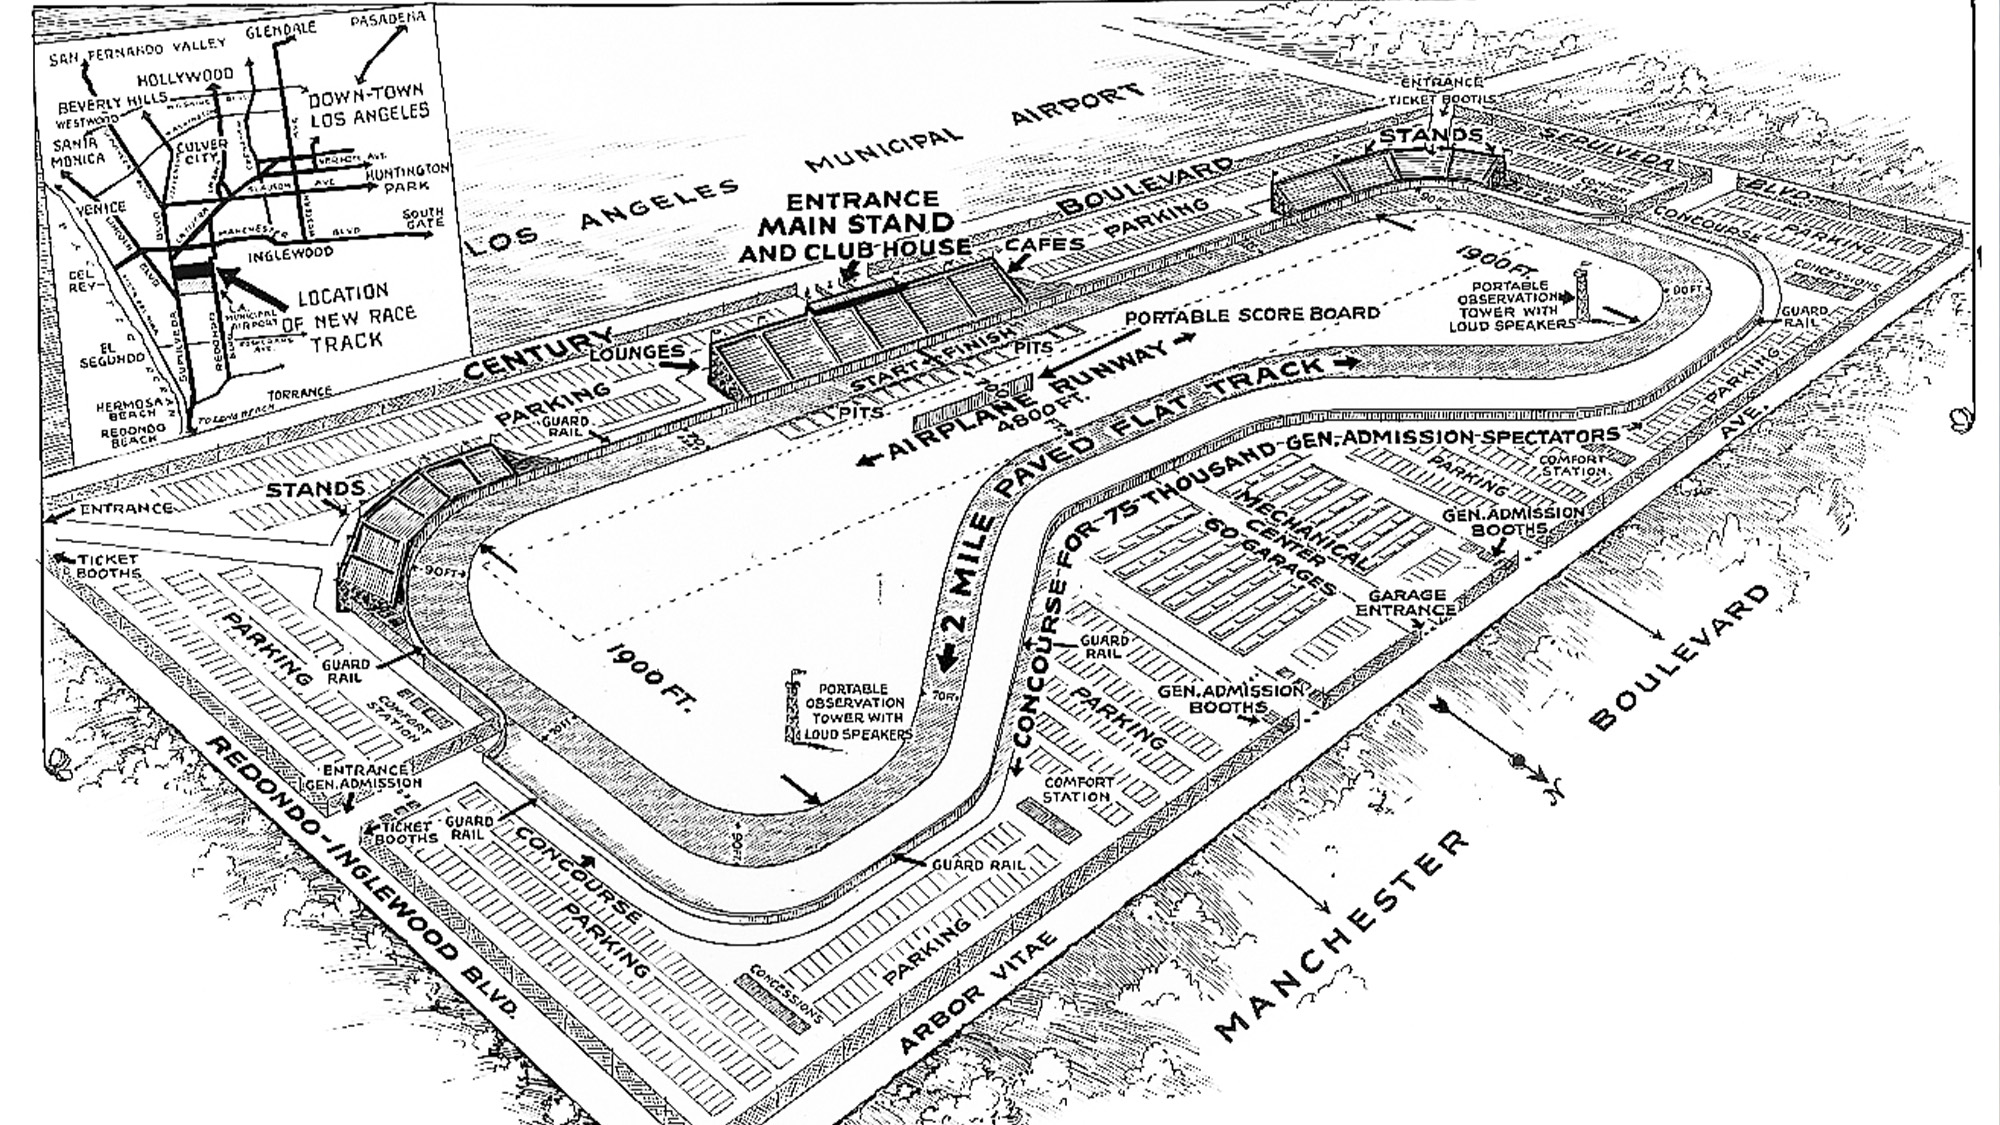 Map of Mines Field track Los Angeles